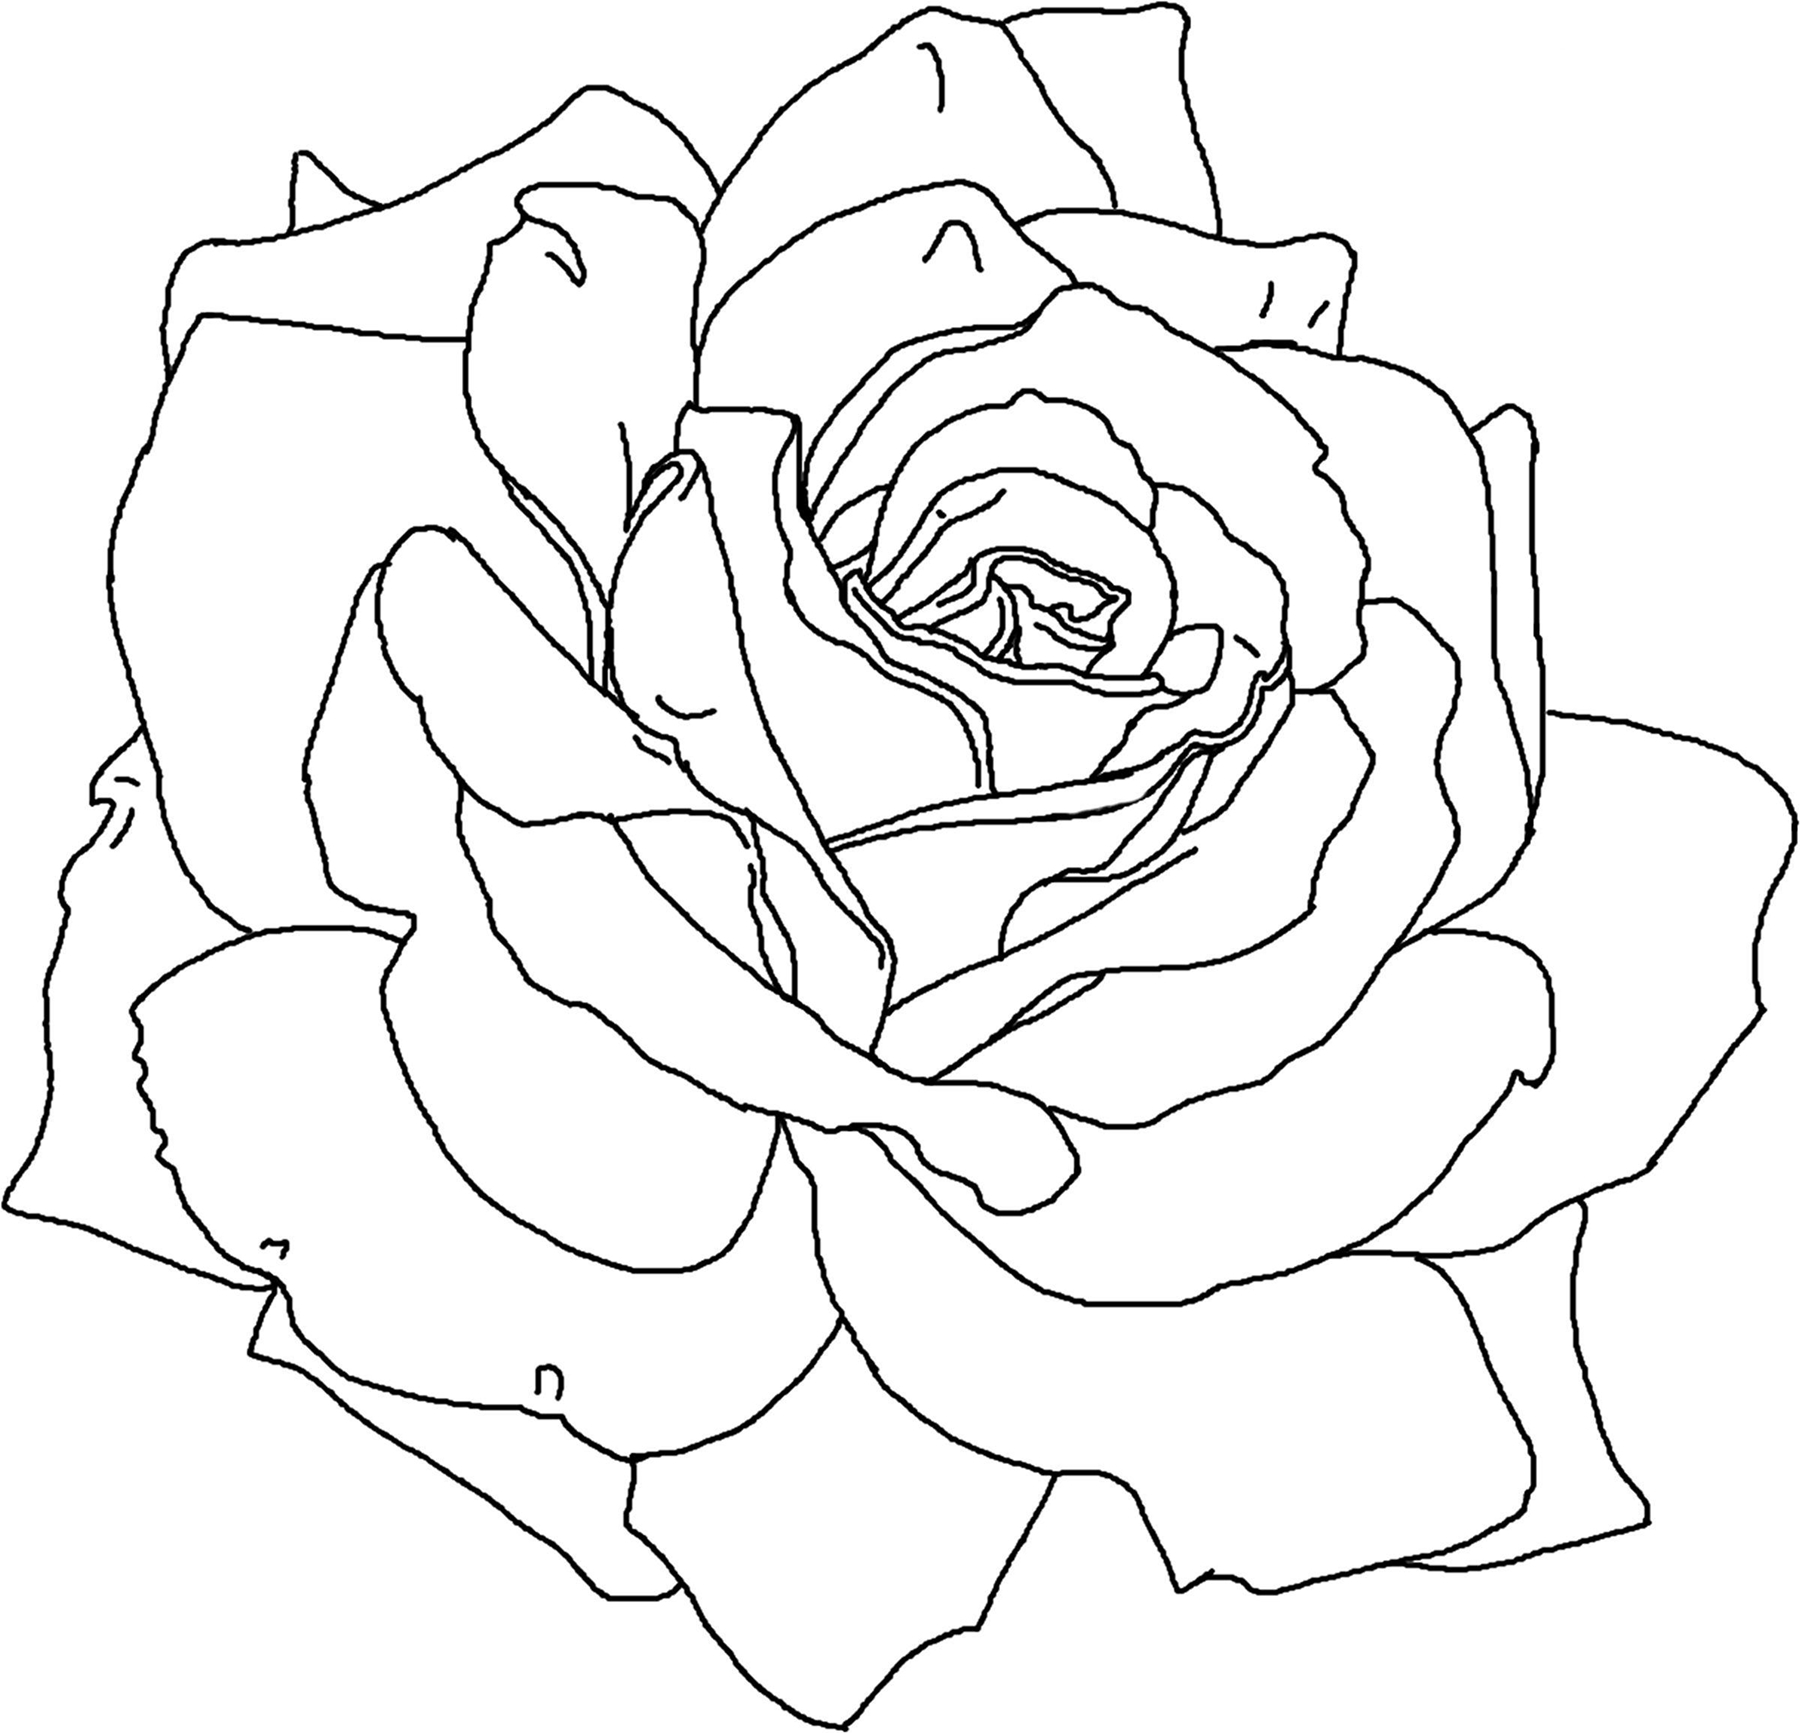 coloring pages roses free printable flower coloring pages for kids best